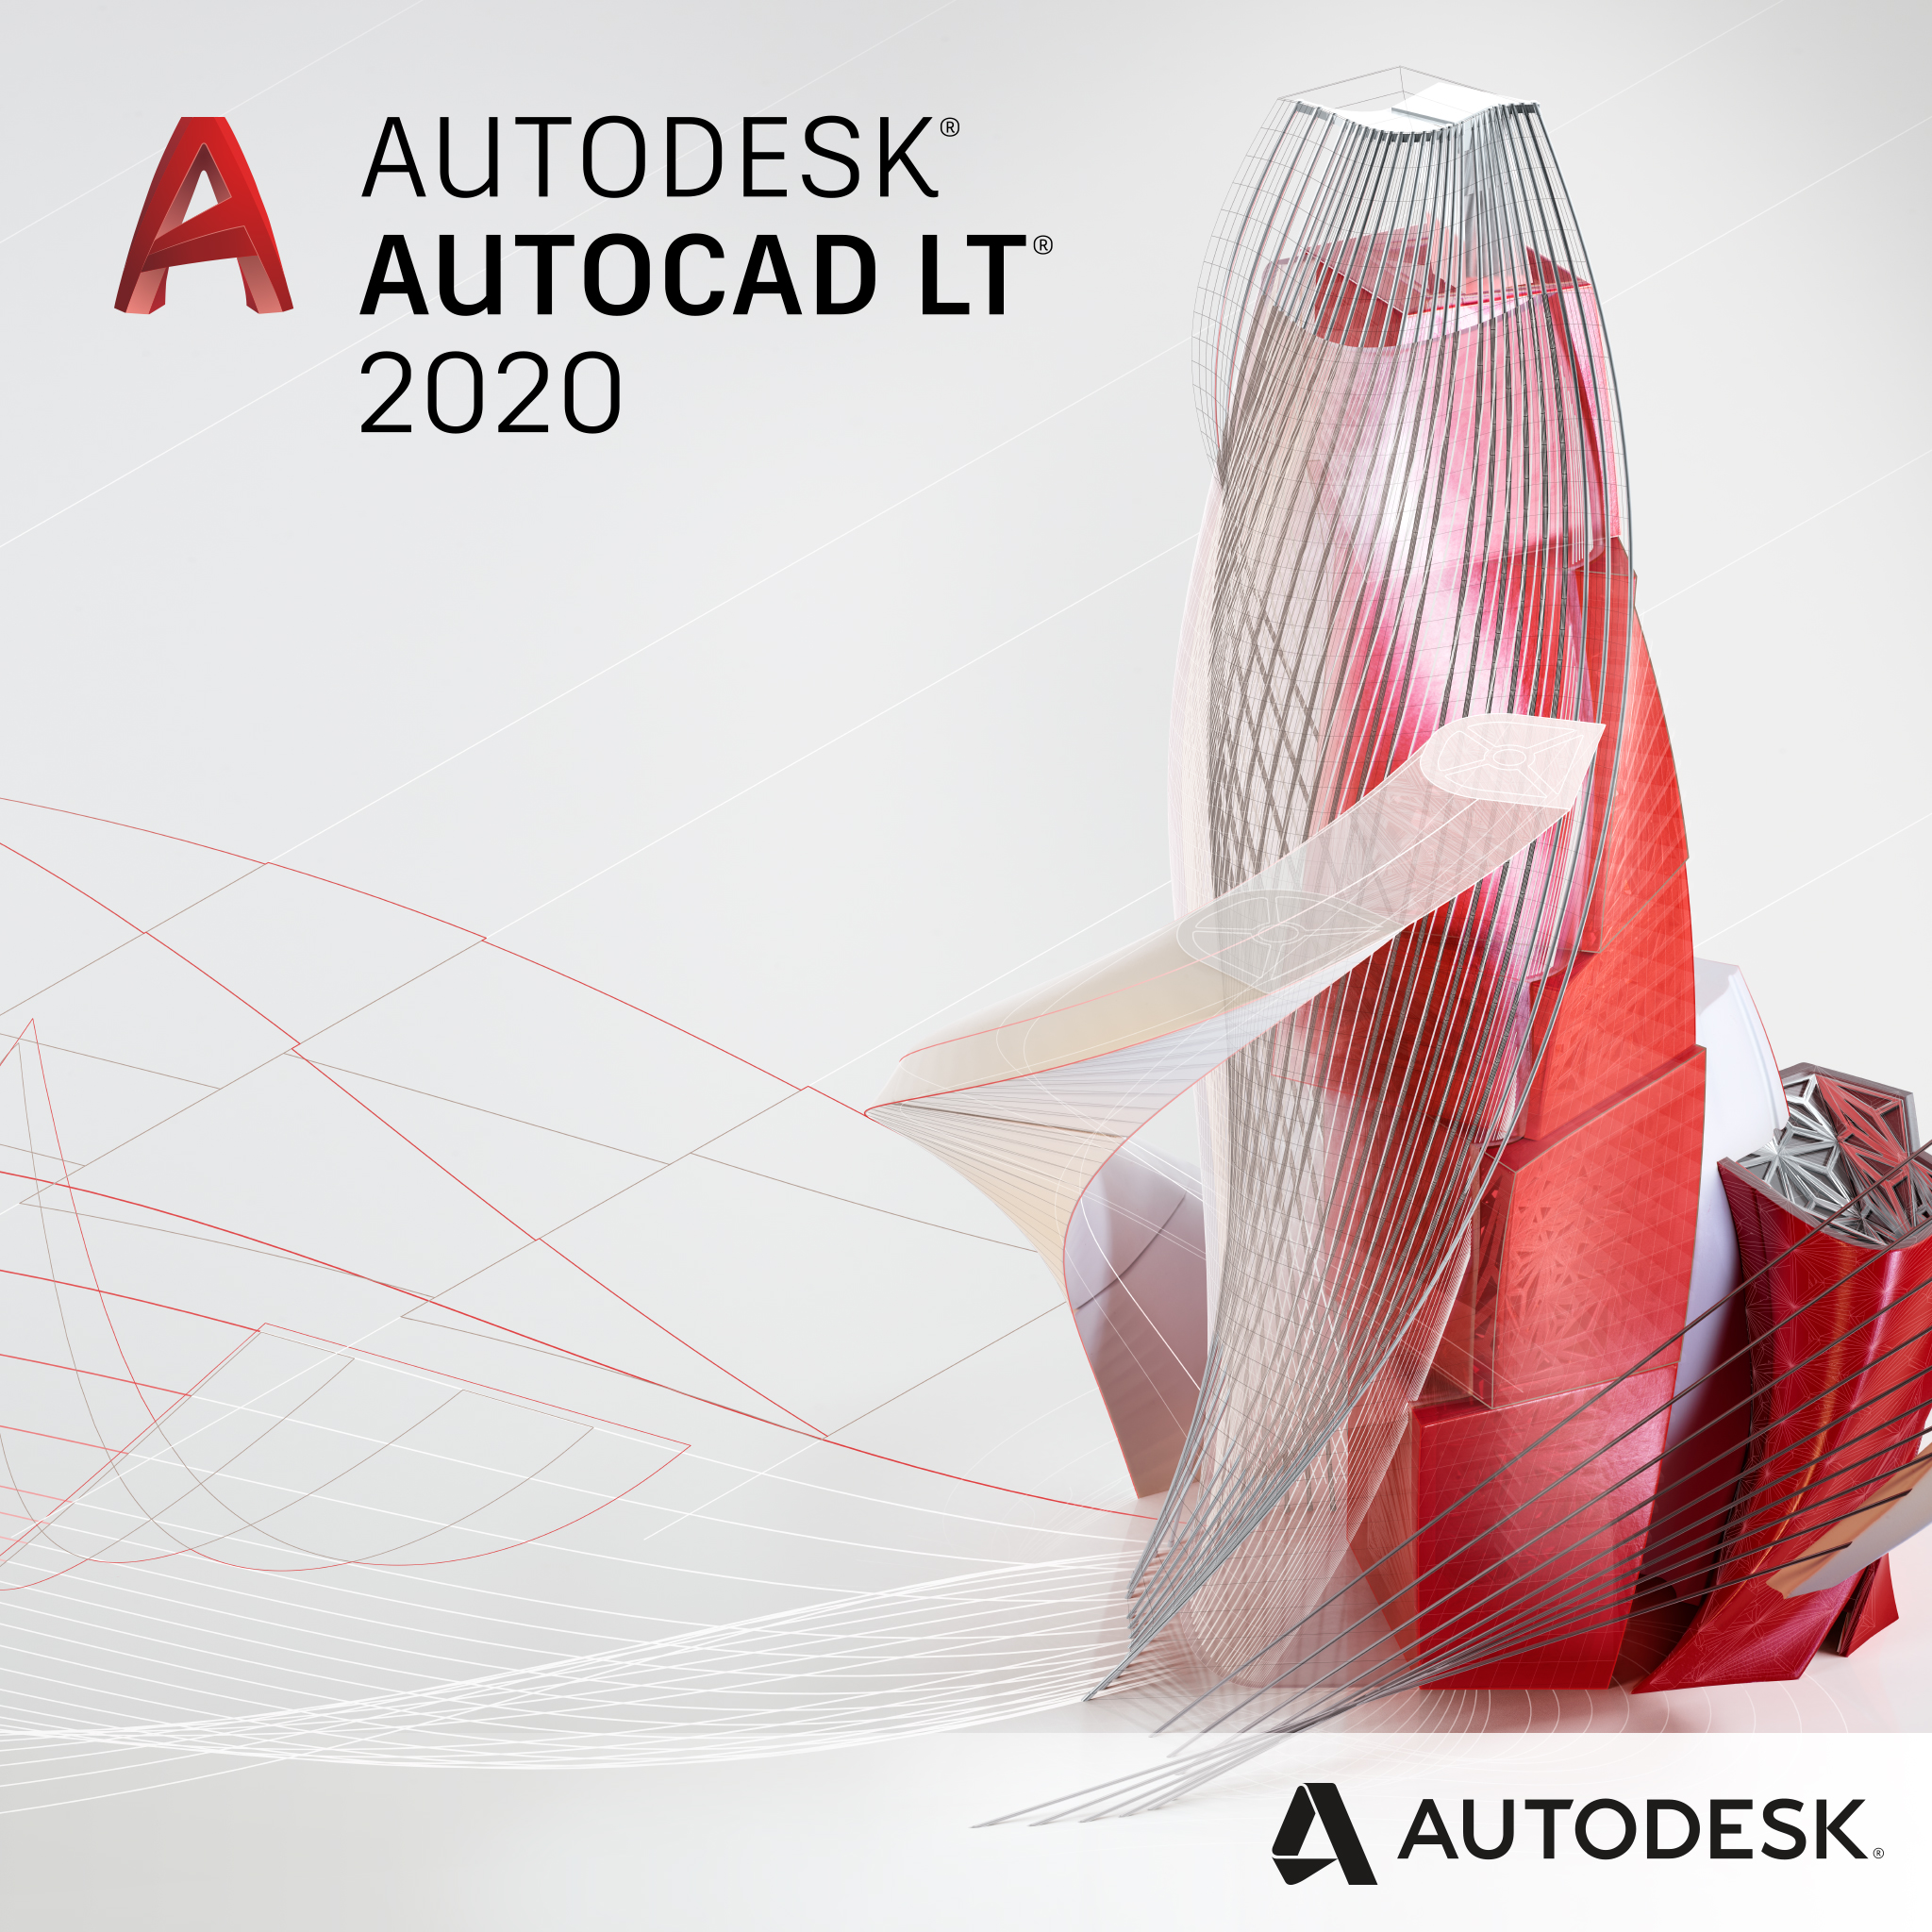 Autodesk AutoCAD (LT) 2020 For Mac OSX Latest Download